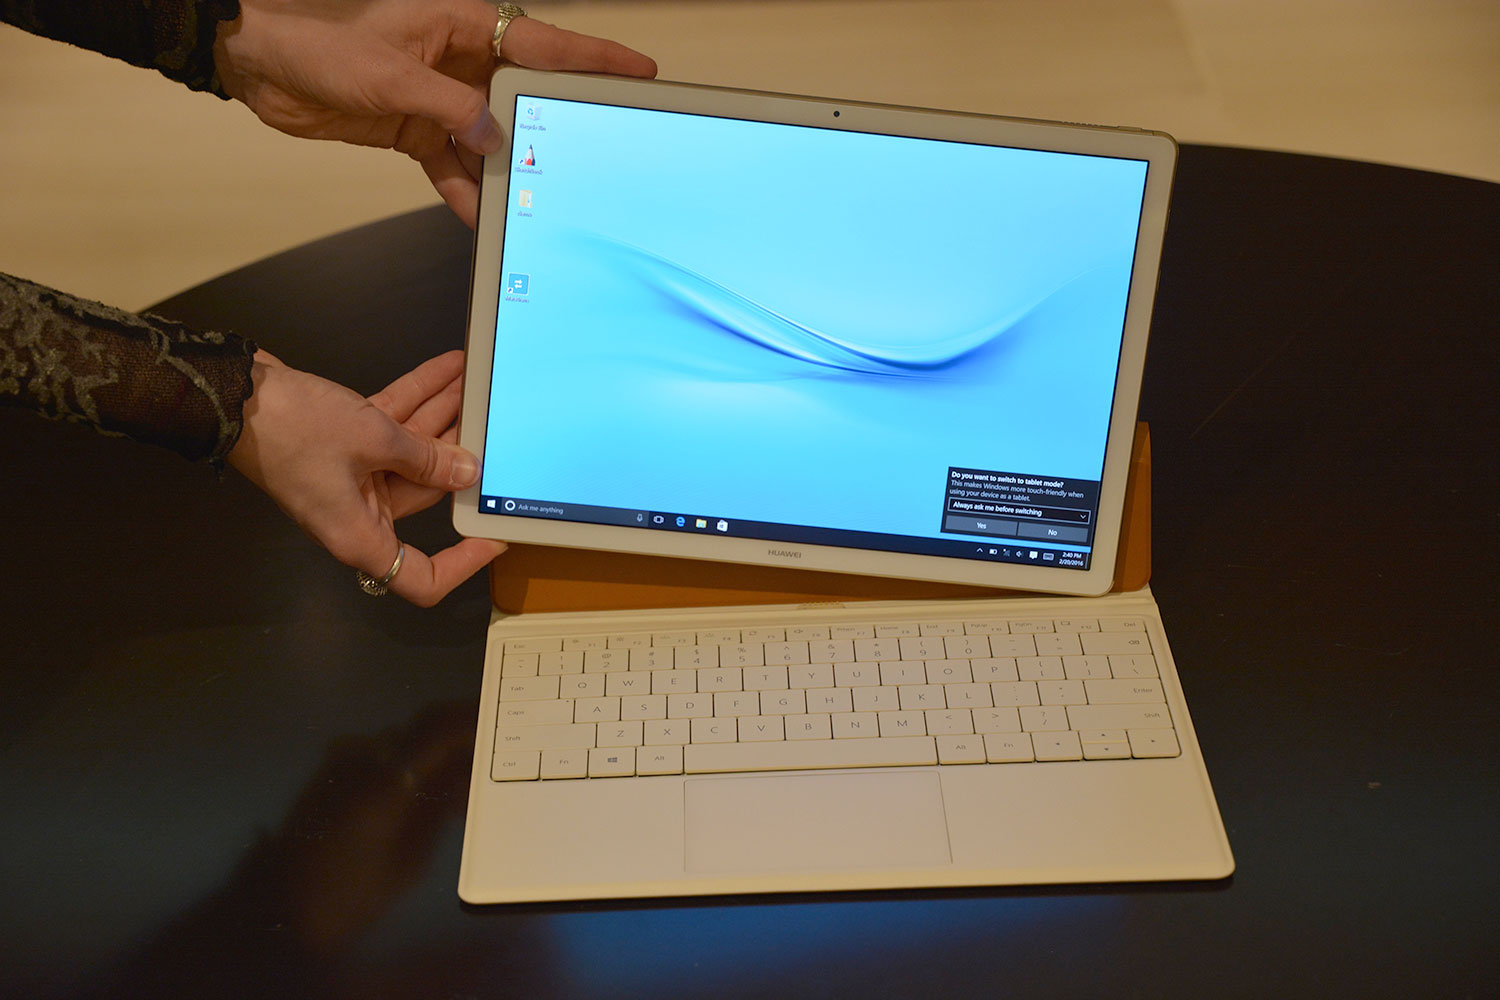 spec comparison huawei matebook vs samsung galaxy tabpro s. Black Bedroom Furniture Sets. Home Design Ideas